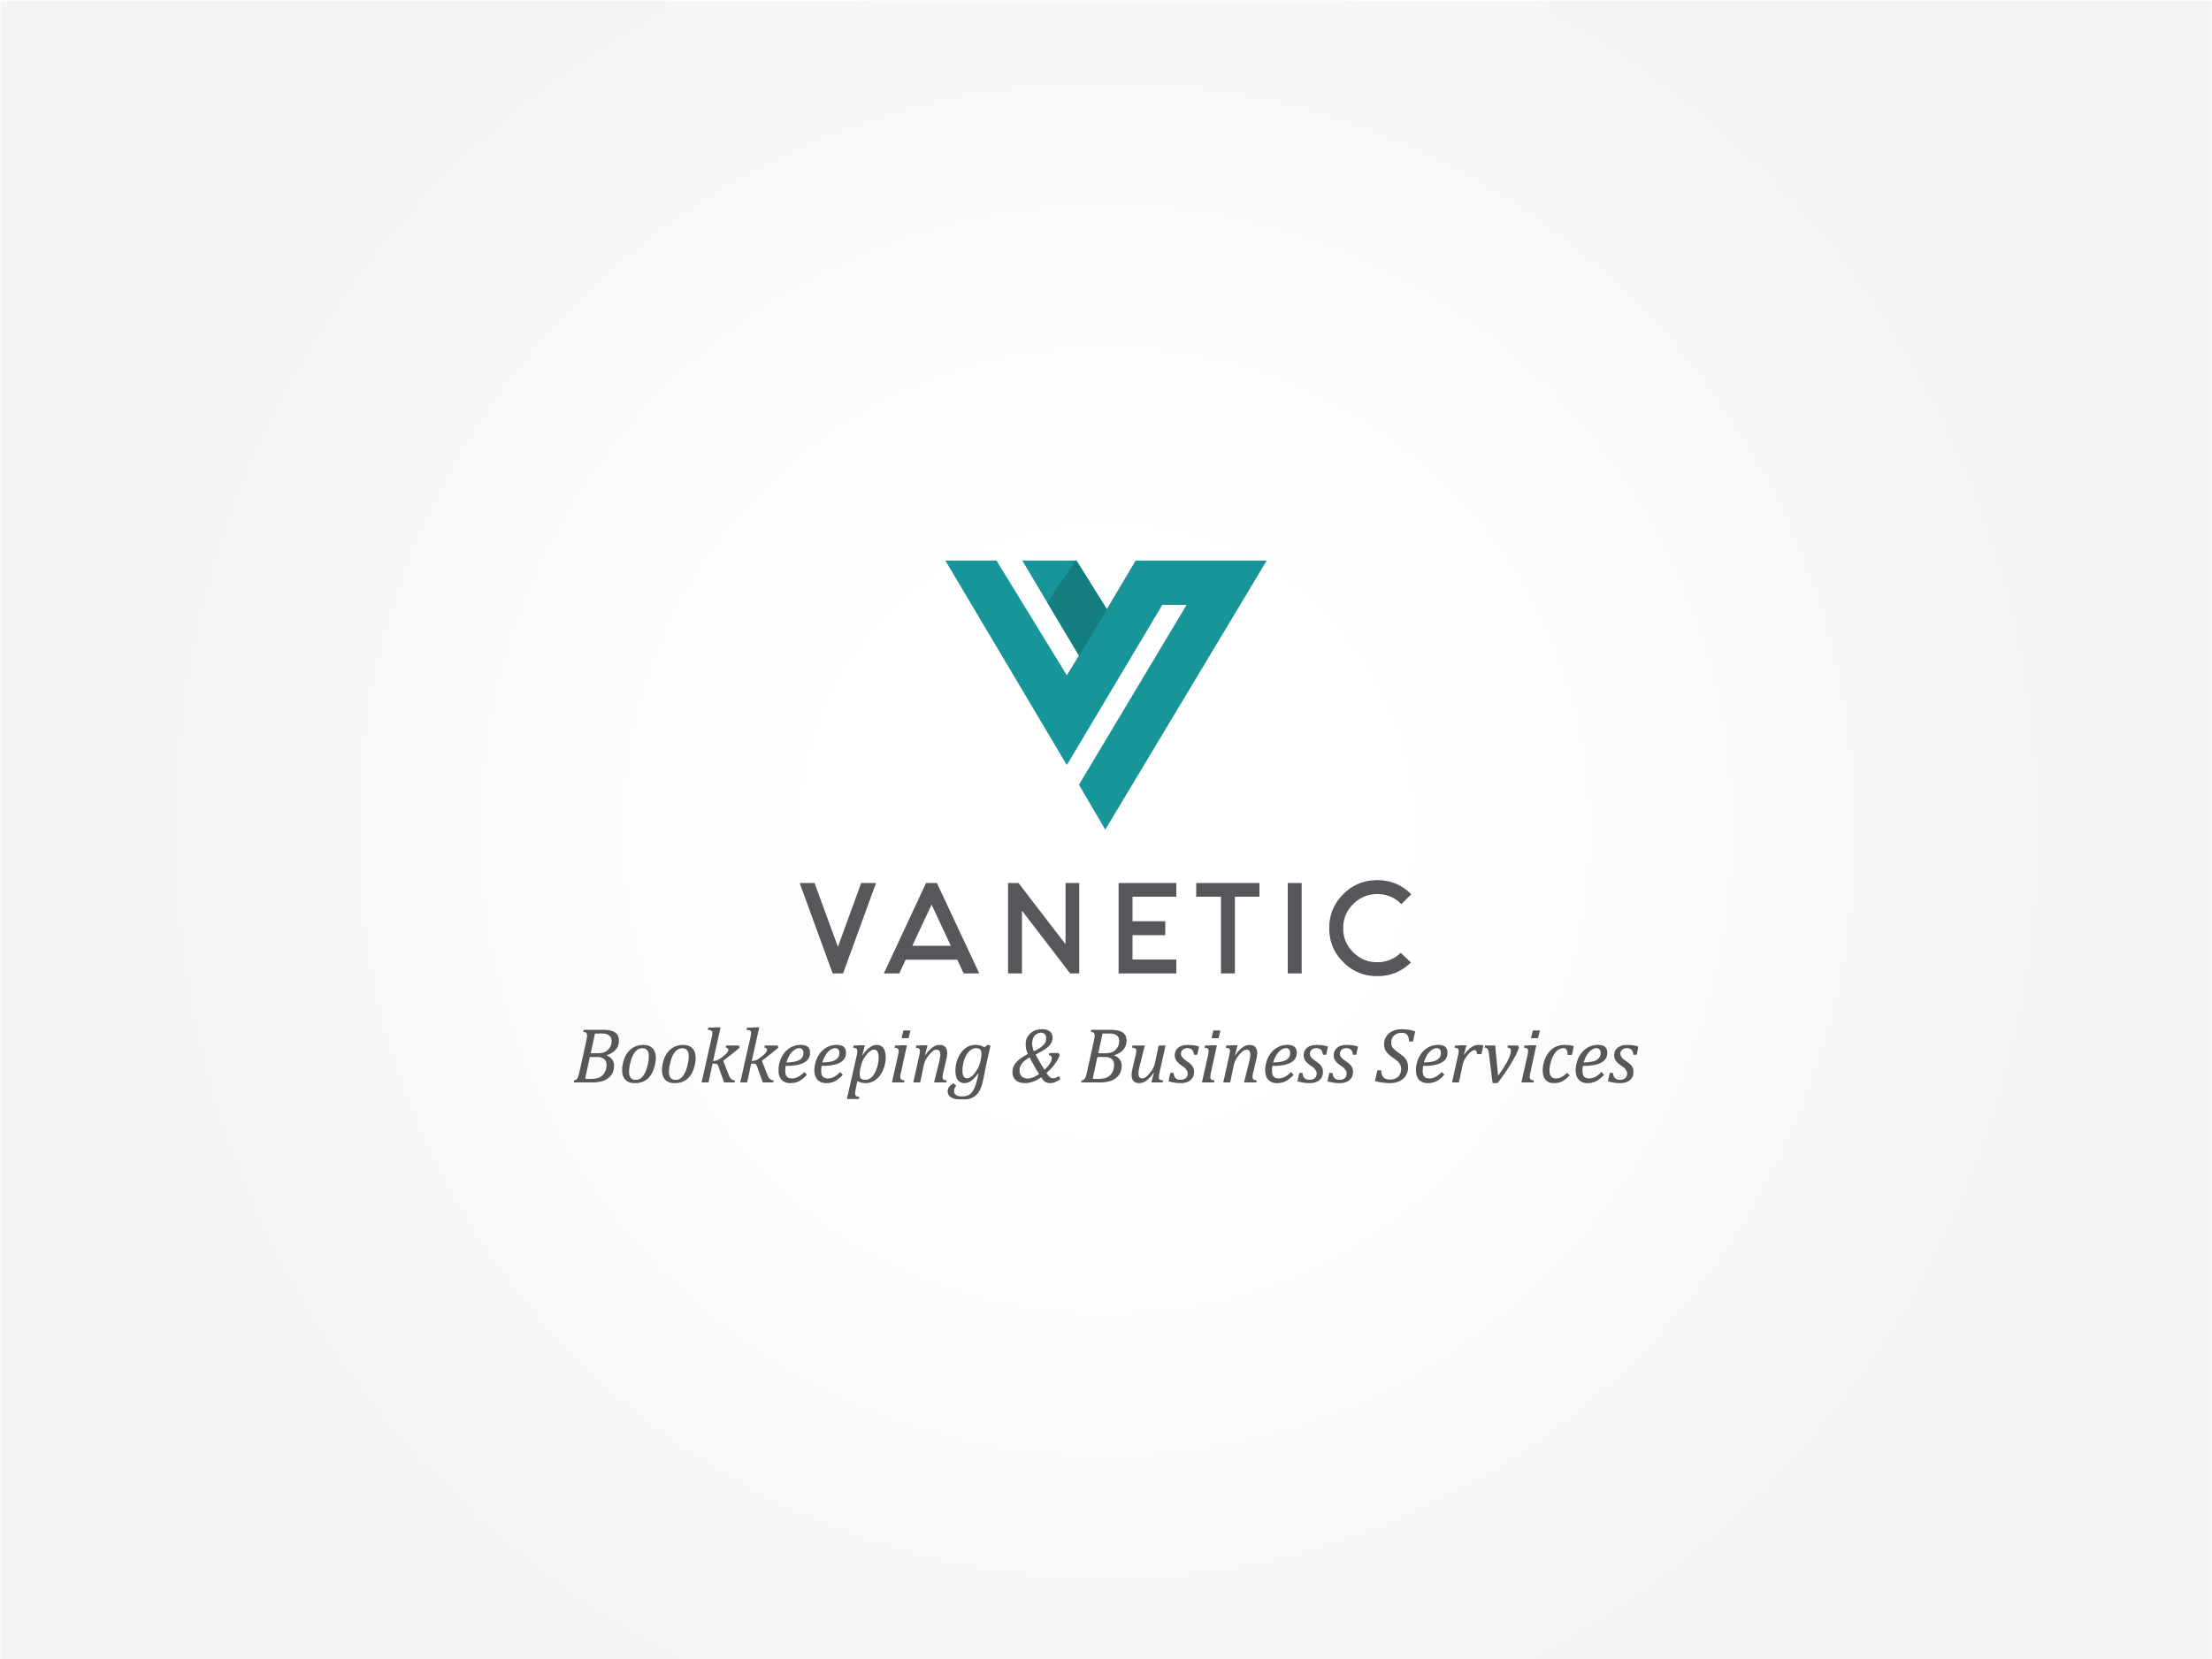 Vanetic Bookkeeping & Business Services